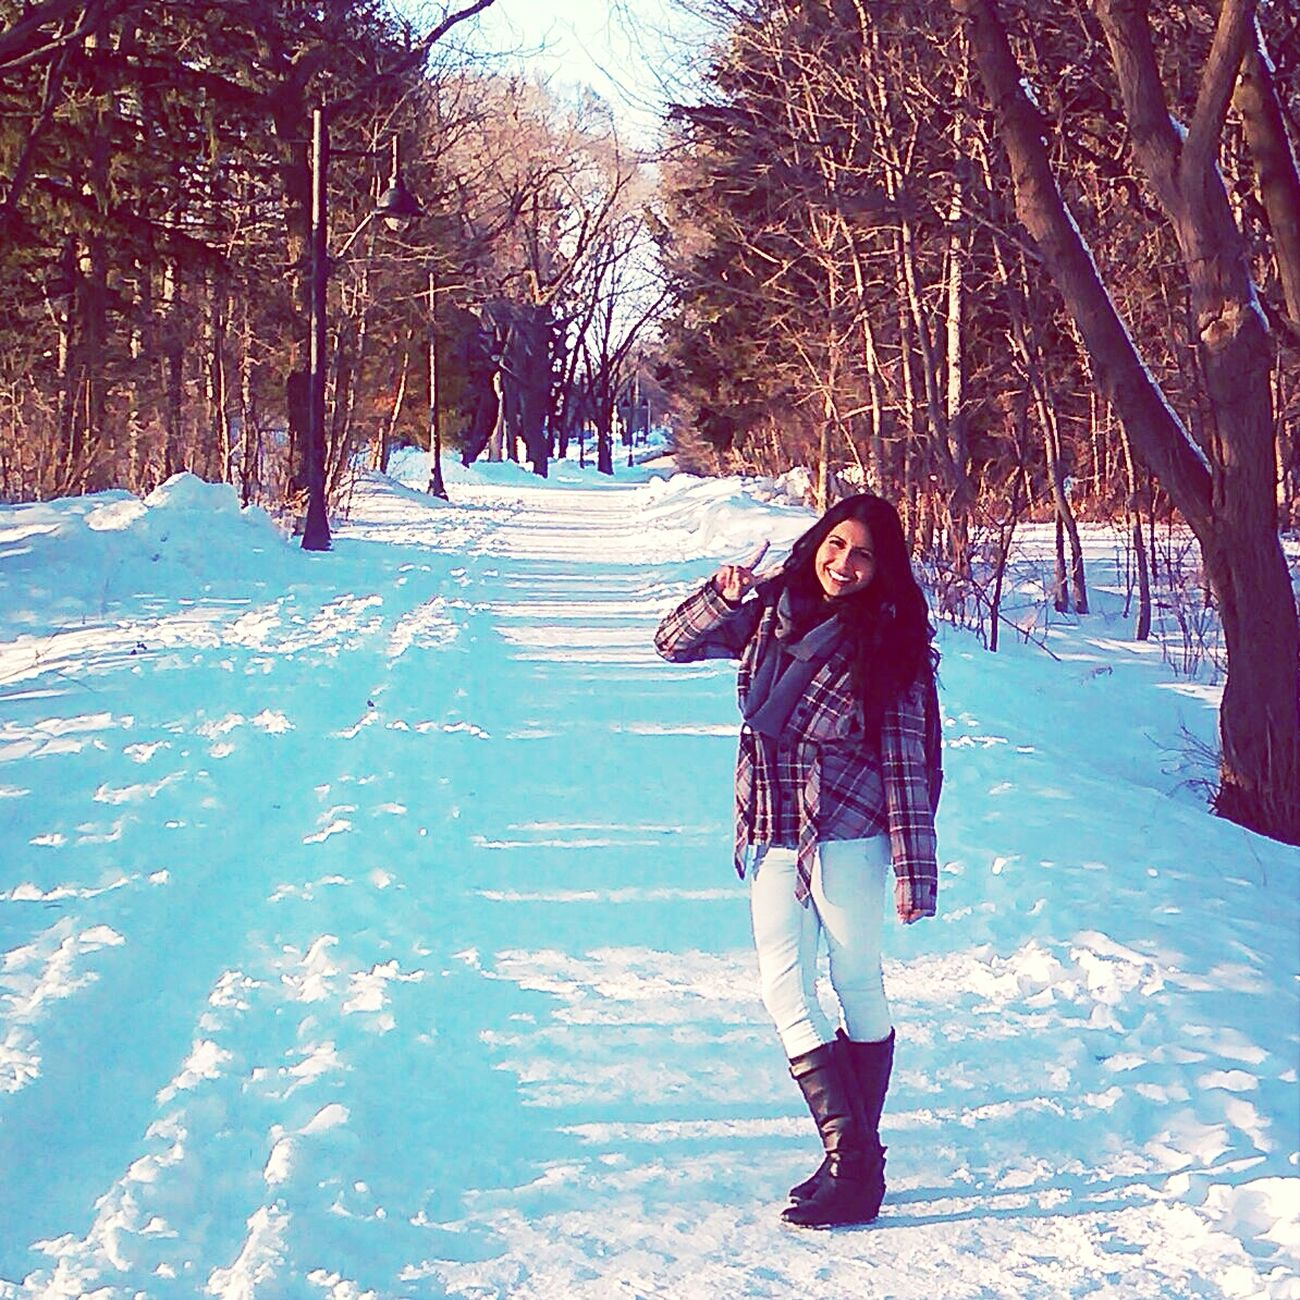 Snow Winter Wonderland That's Me Smile